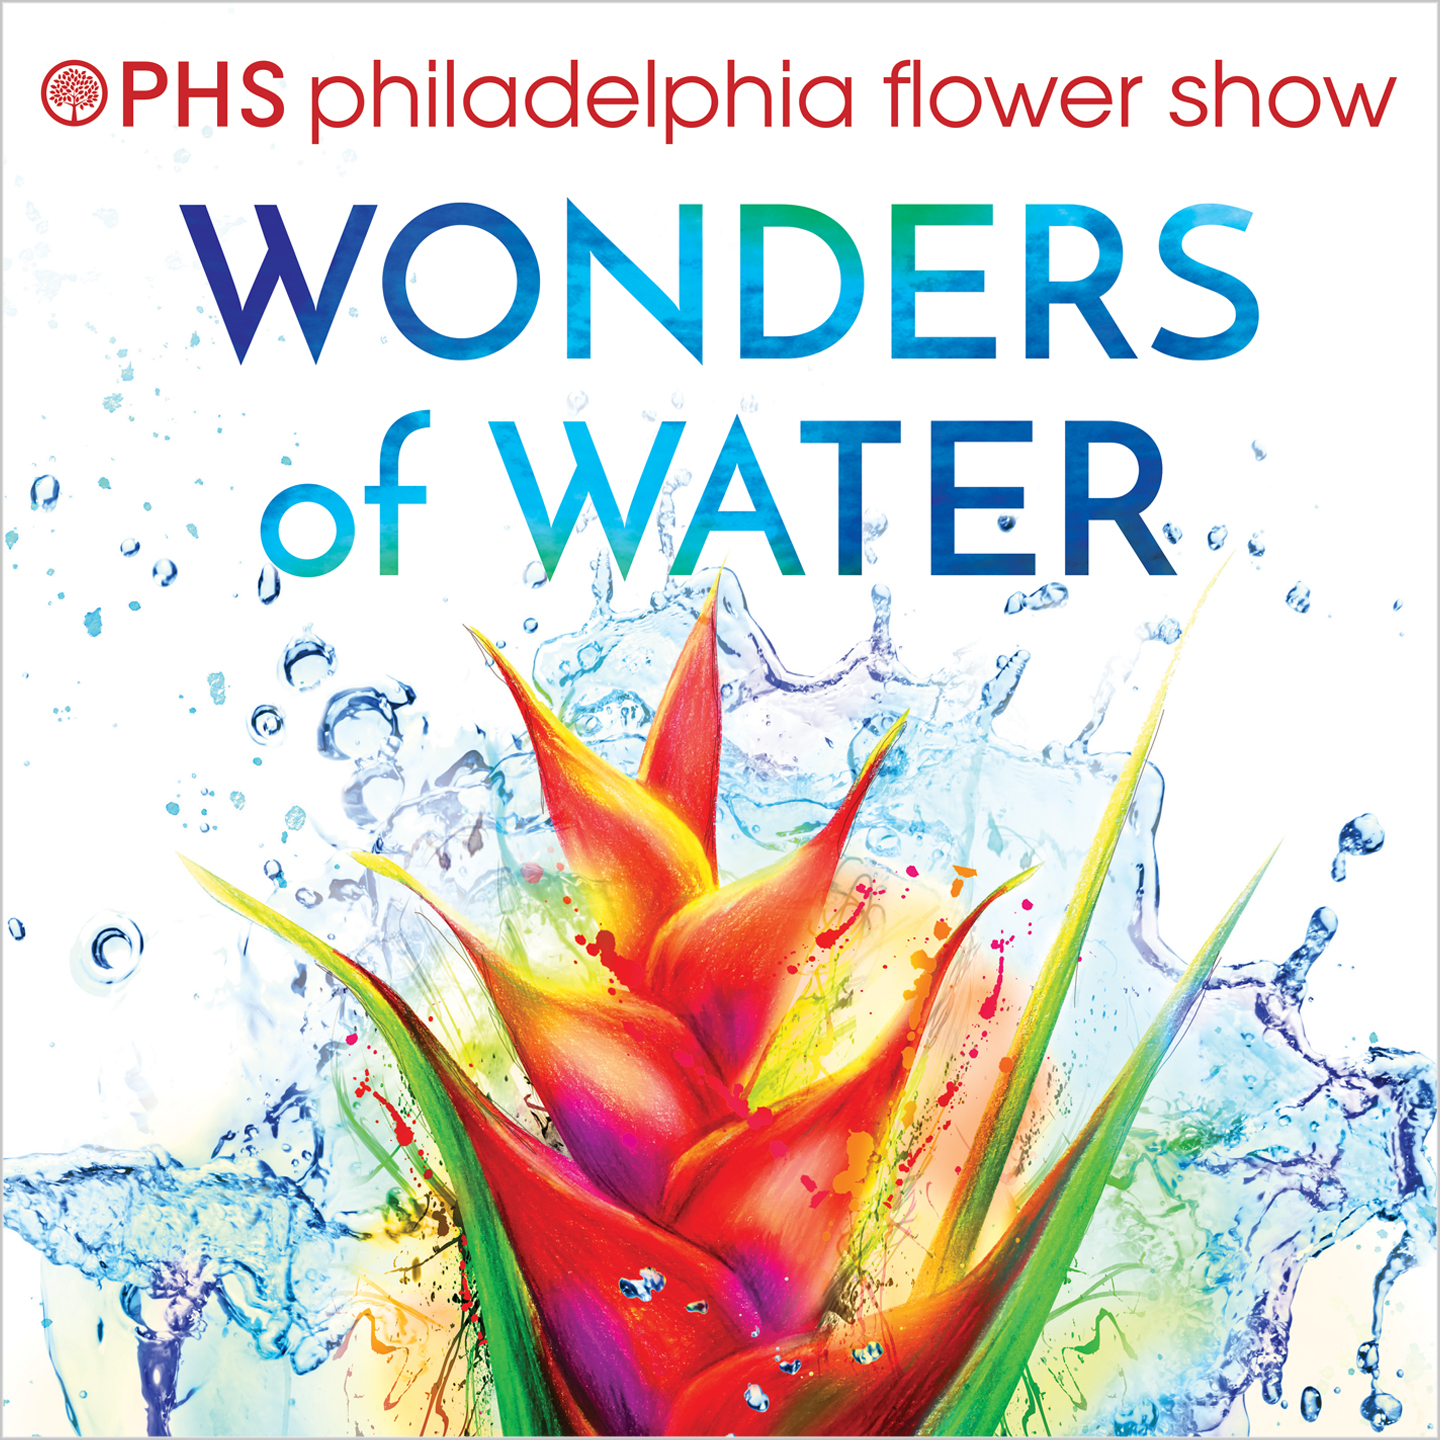 Merchandise designs for the 2018 PHS Philadelphia Flower Show, such as seed packets, t-shirts, keychains, coasters, mugs, tote bags, tumblers, and more. Won gold for Best Overall Merchandise Program and Best Merchandise Item (tumbler) at the International Festivals & Events Association's annual Pinnacle Awards.